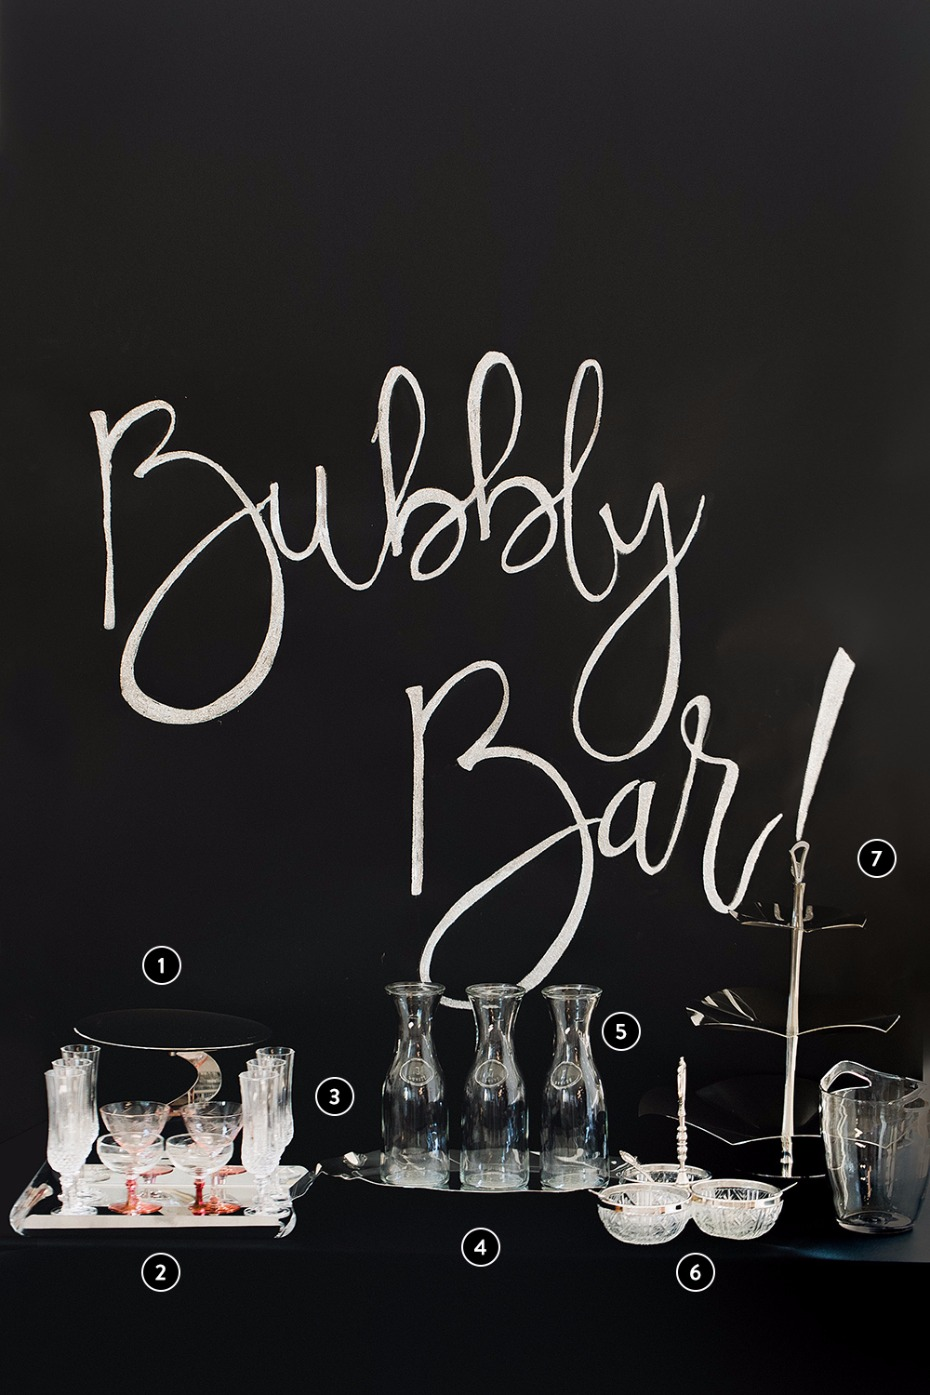 How to set up a Champagne bar